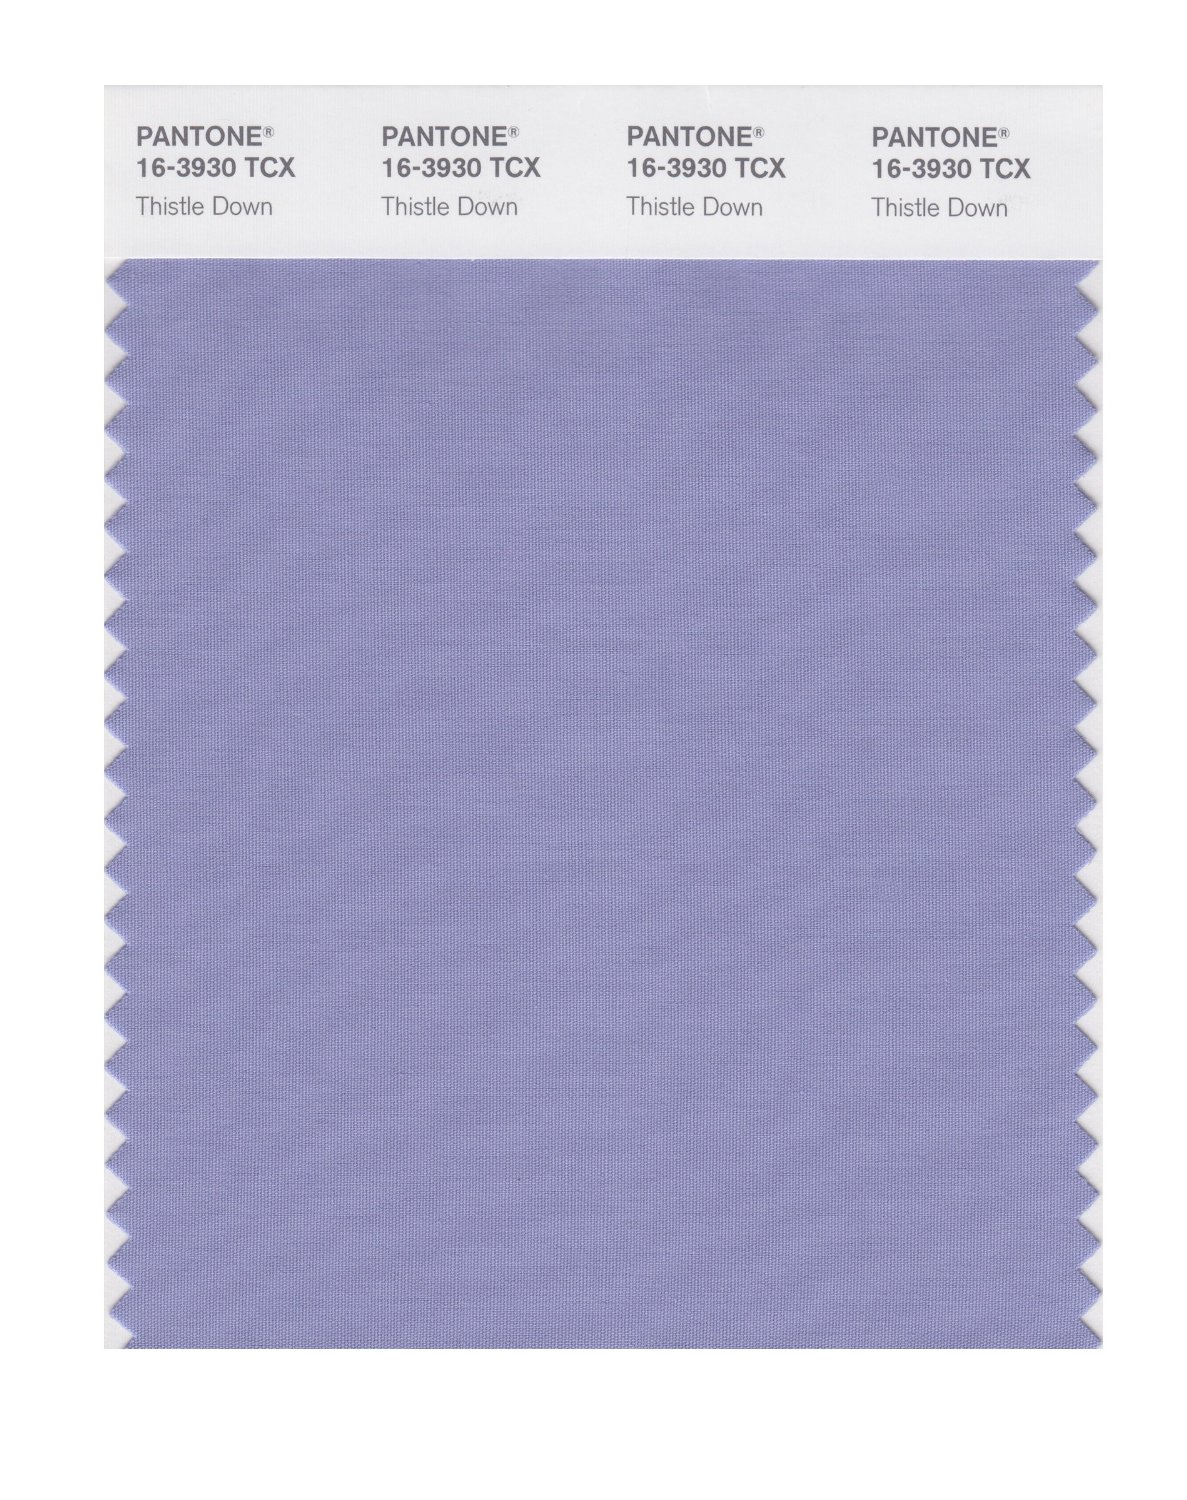 Pantone Smart Swatch 16-3930 Thistle Down